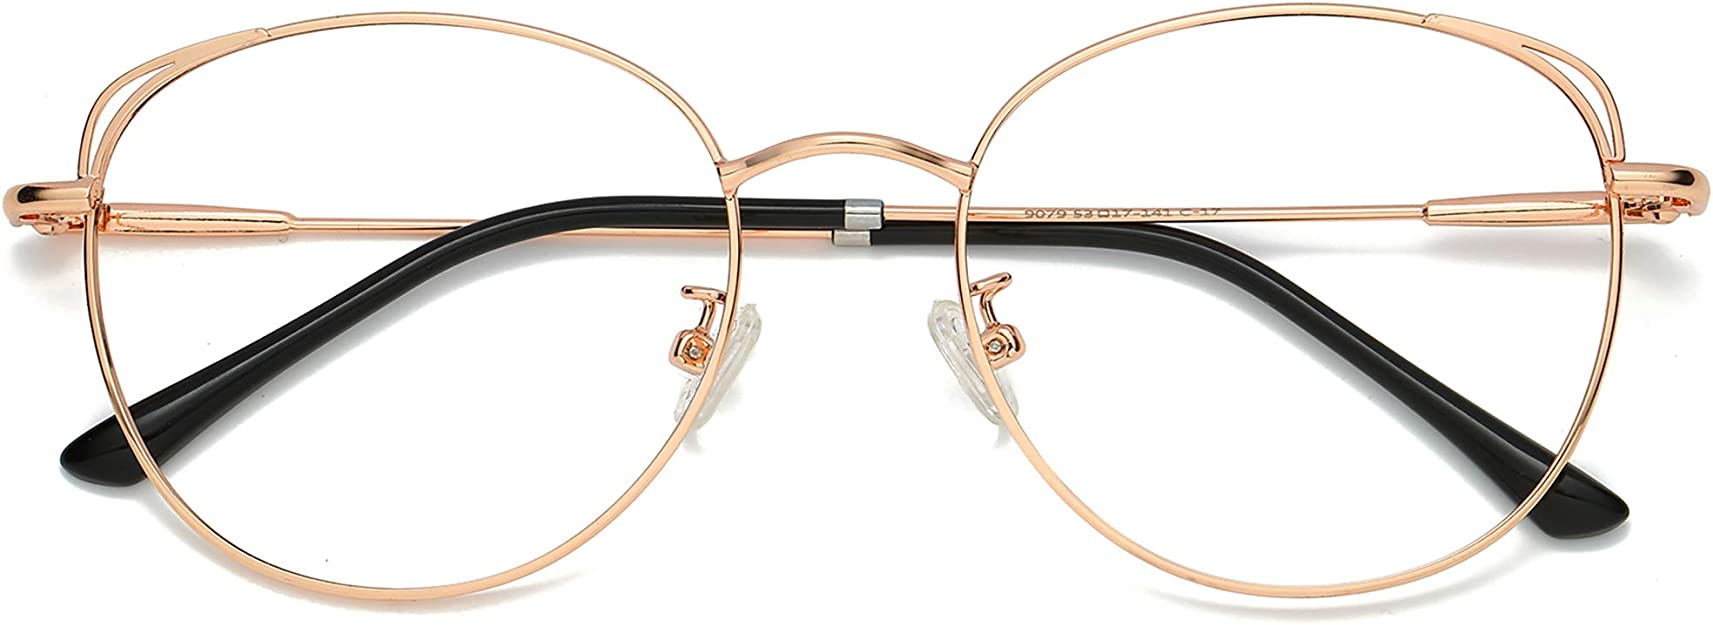 Amazon.com: SOJOS Cat Eye Blue Light Blocking Glasses Hipster Metal Frame Women Eyeglasses She Young SJ5027 with Rose Gold Frame/Anti-blue light Lens: Clothing